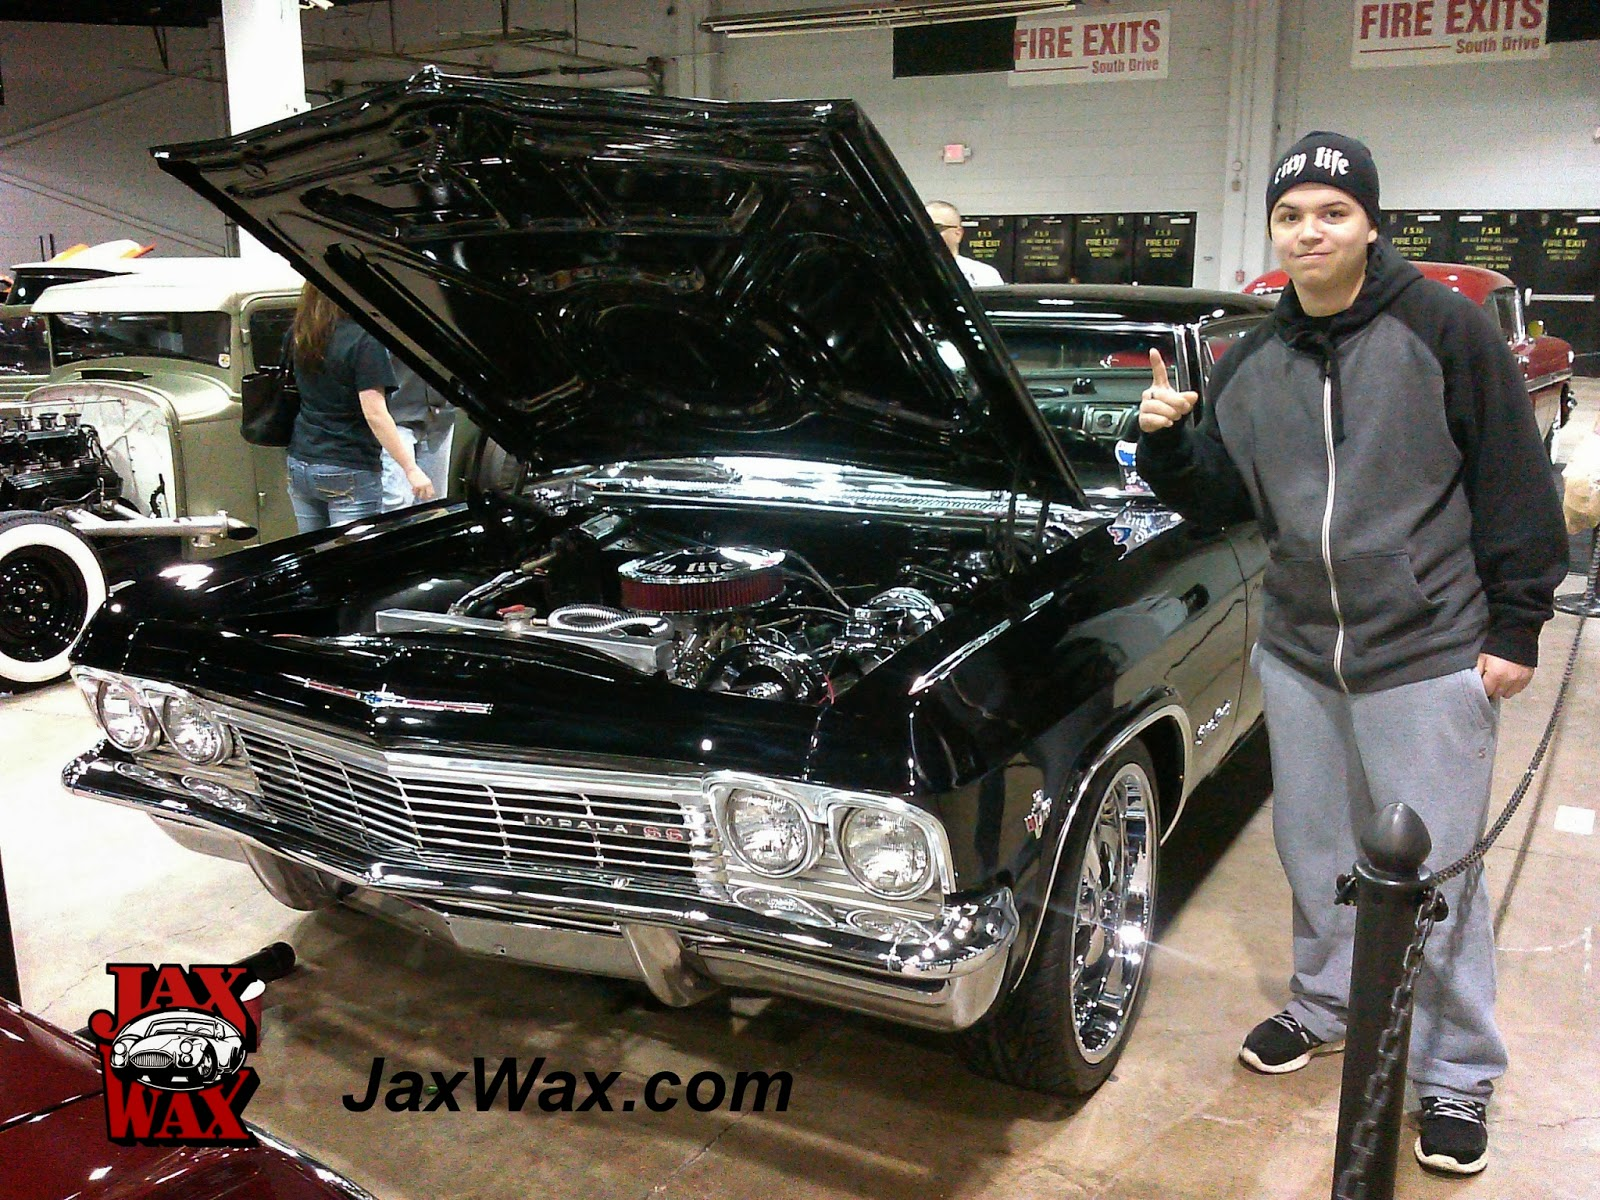 1965 Chevy Impala SS Jax Wax Customer Chicago World of Wheels